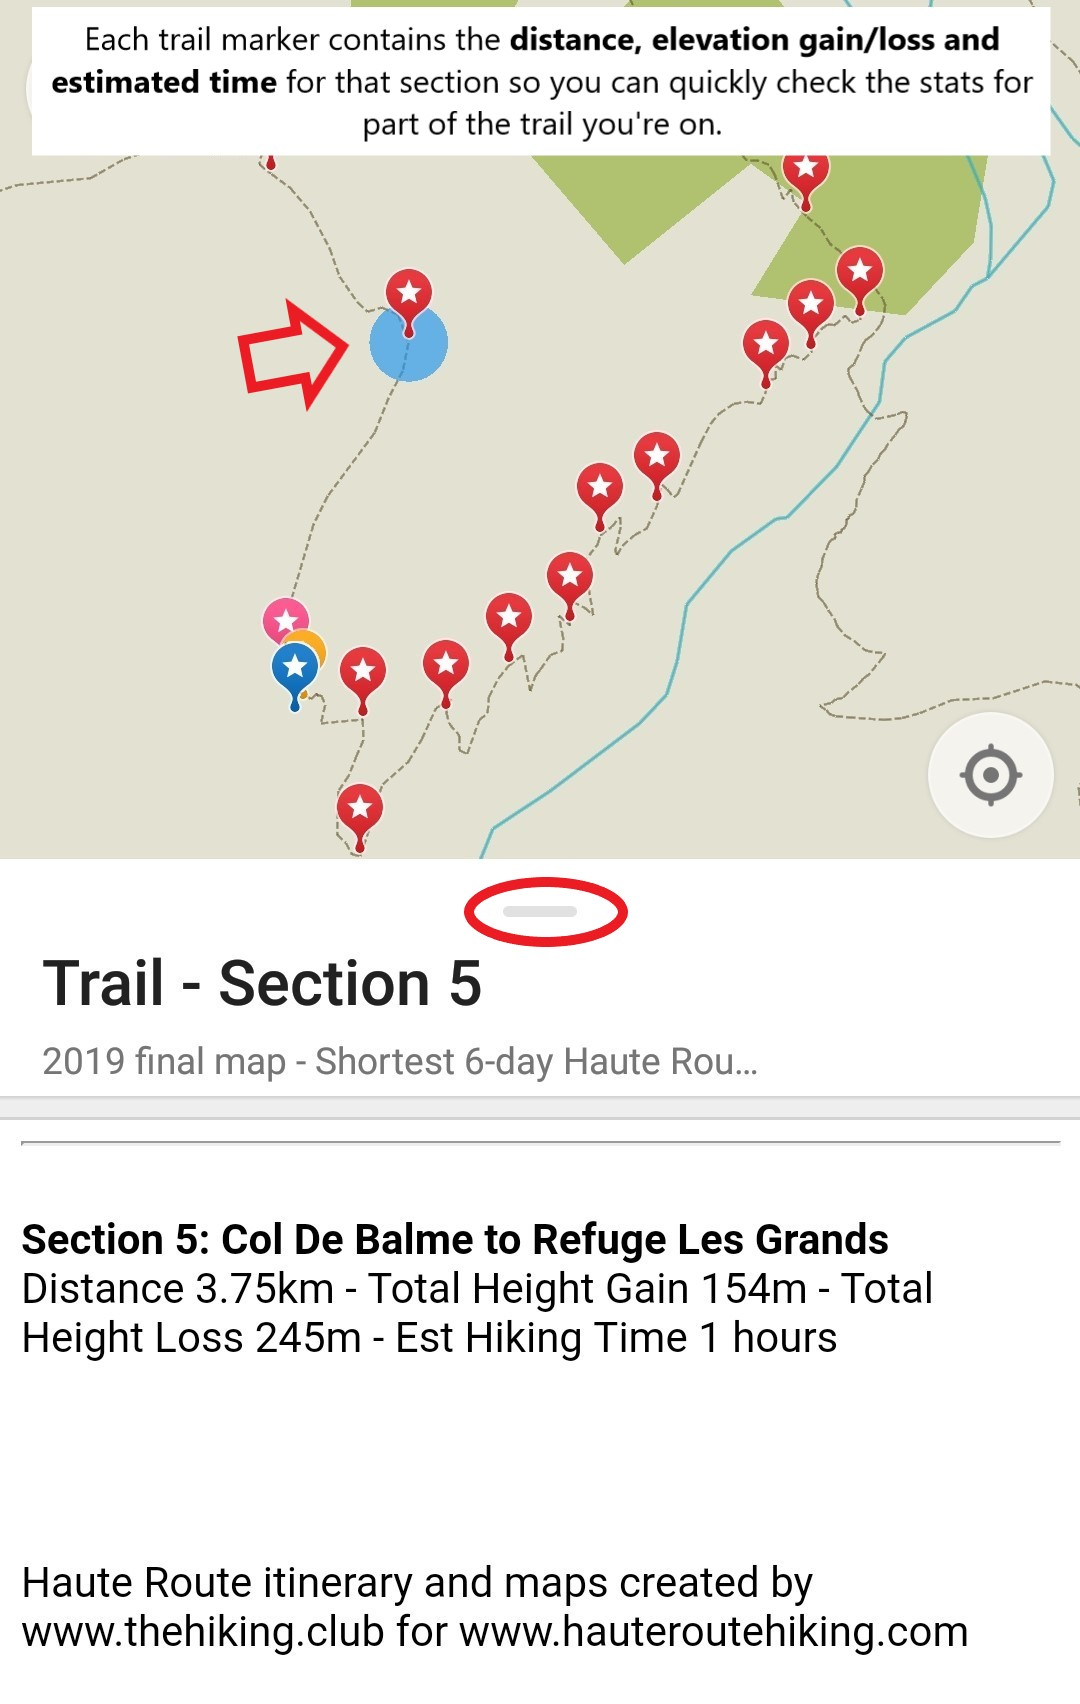 Image 21:  This trail information is the same as what can be found in your personalised itinerary